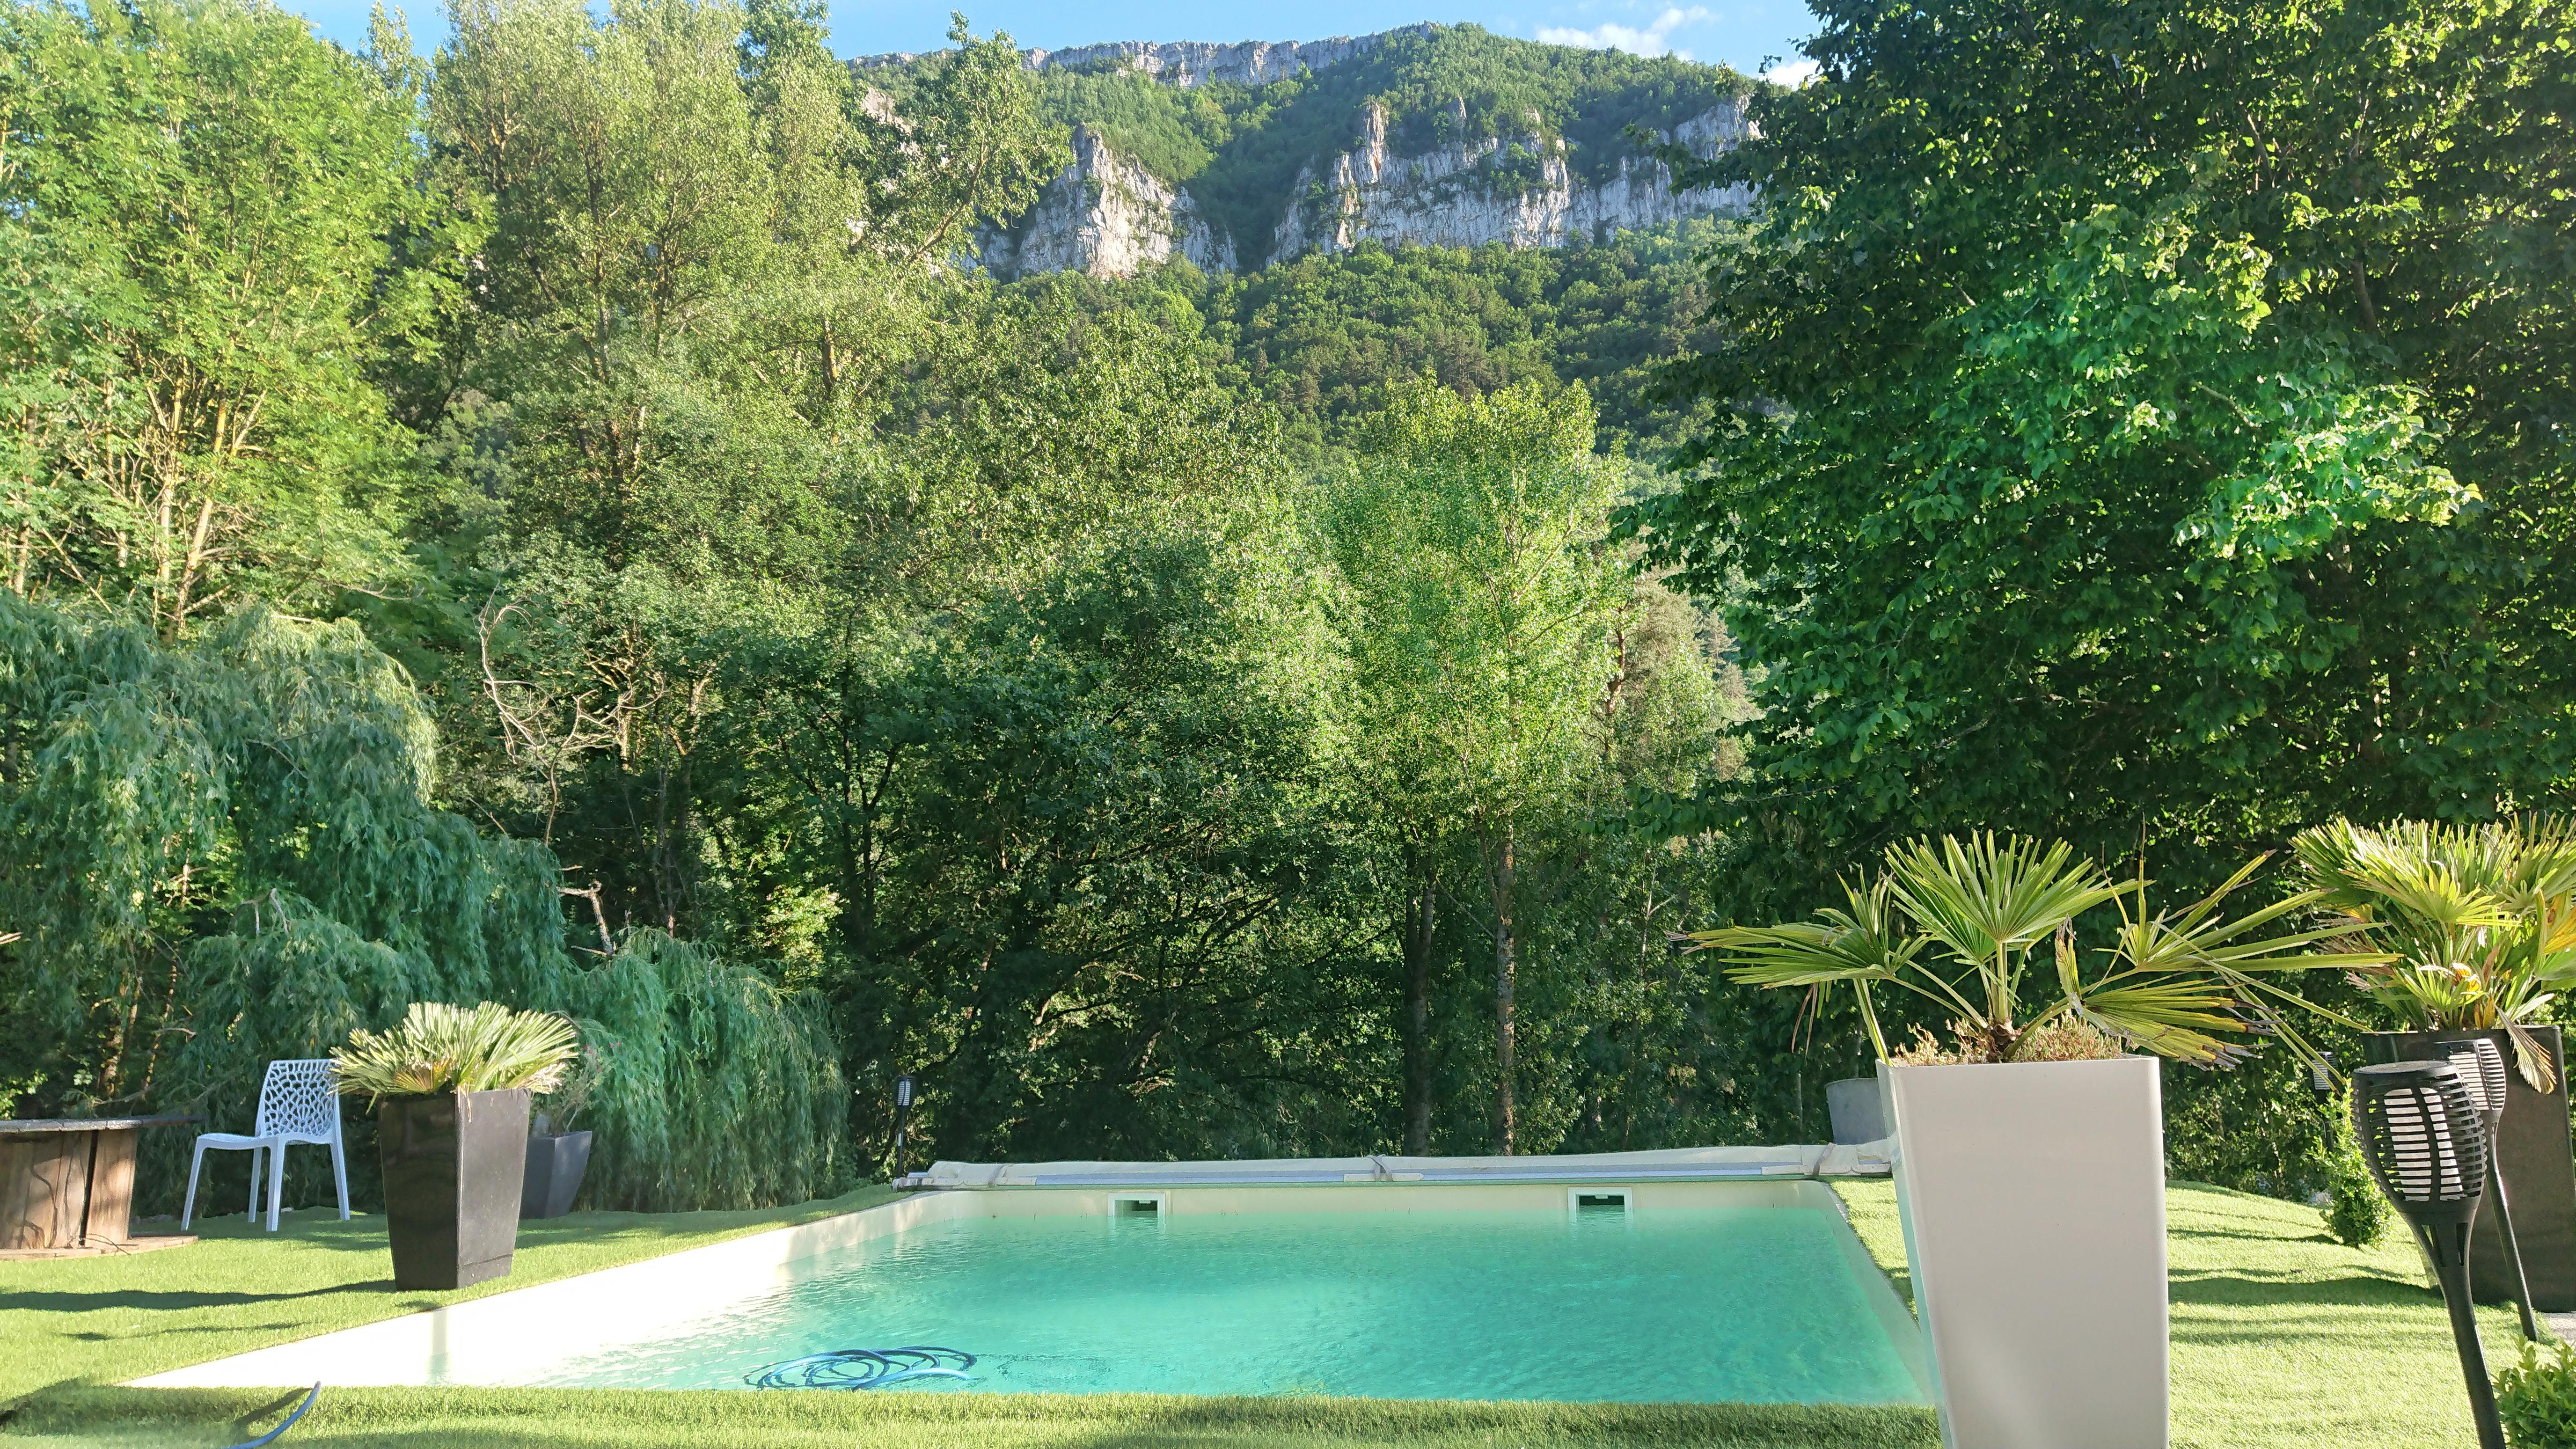 New 2020 at Dandelion gite spa pool with exceptional views of the Tarn Gorges